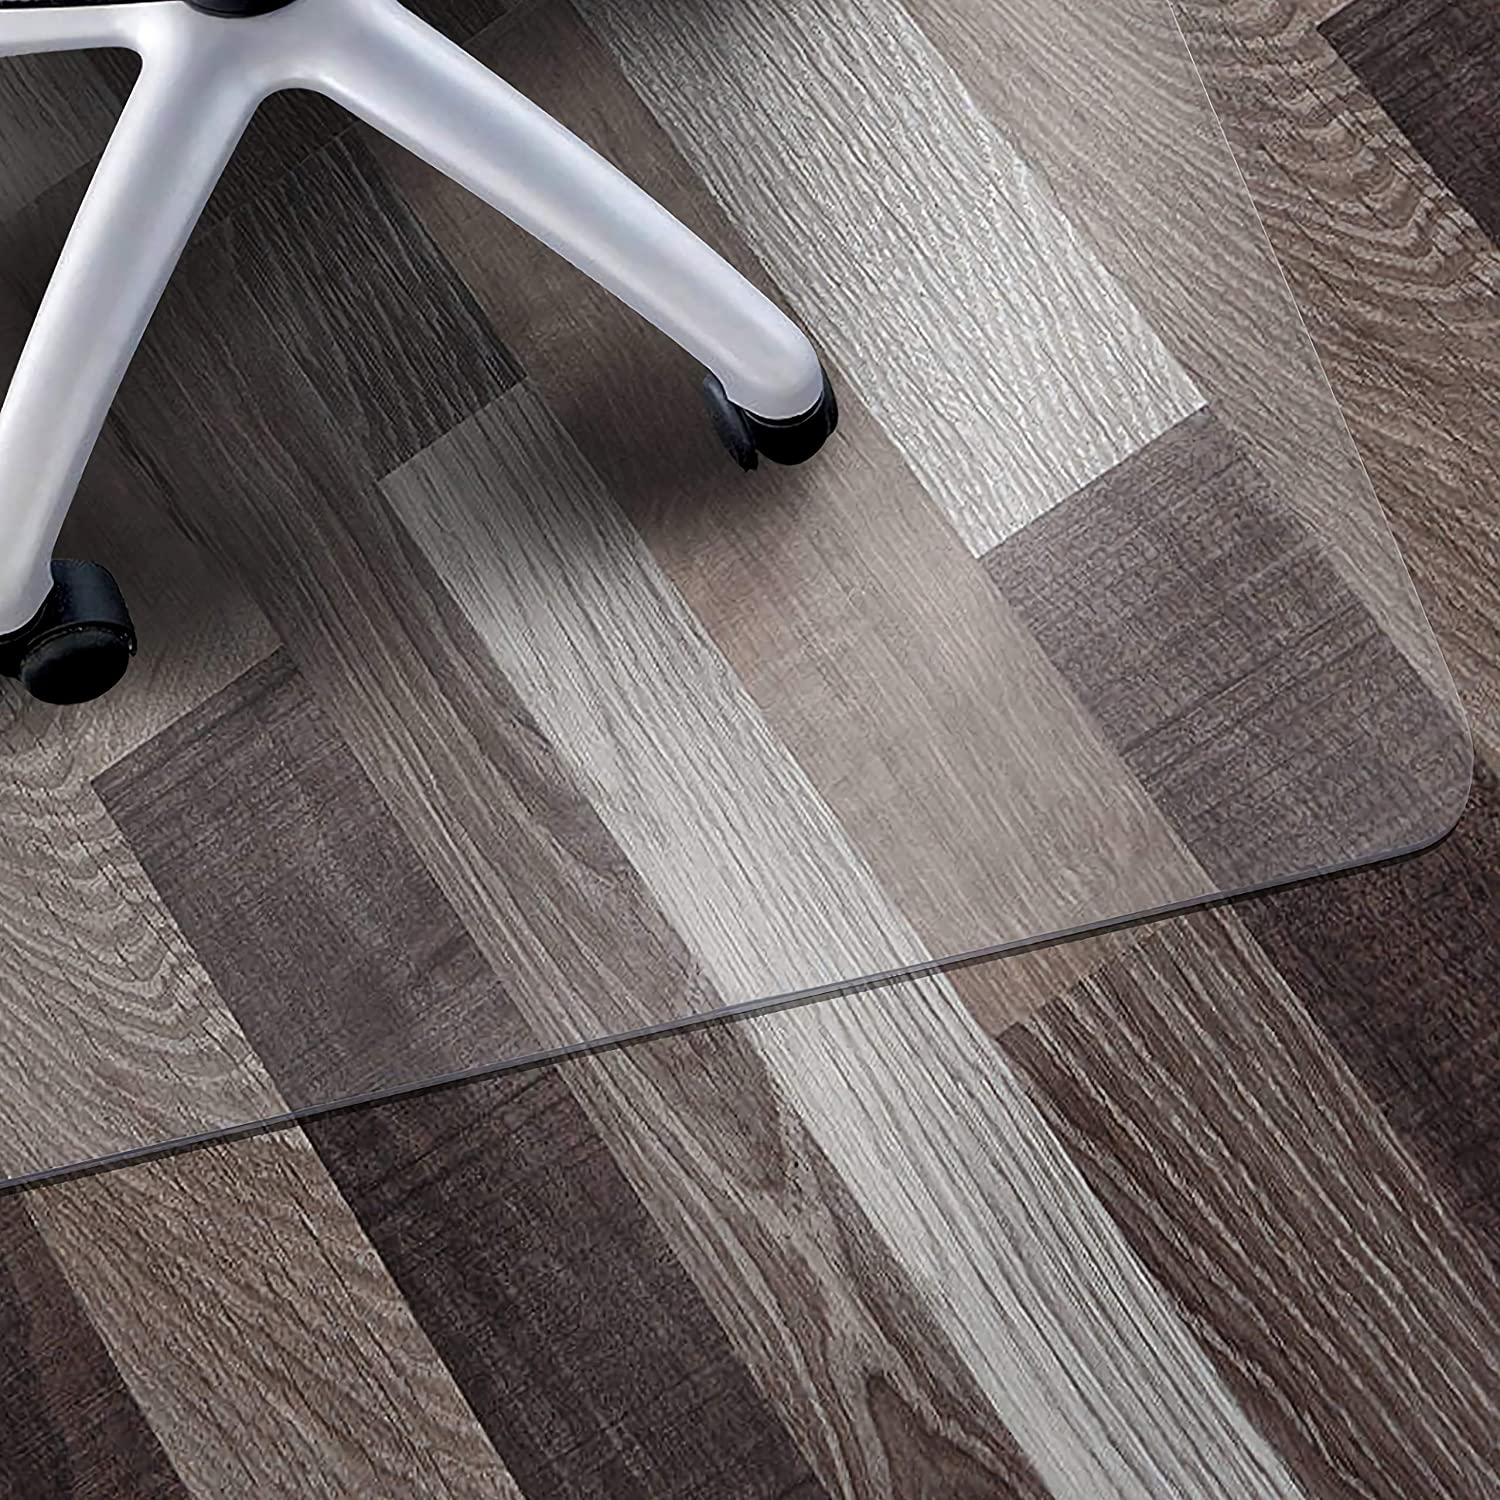 """Office Chair Mat for Hardwood Floor, 36""""x48"""" WASJOYE, Multi Purpose Transparent Thick Clear PVC Tile Cover Floor Protector for Home Office Computer Desk Wooden Floors, Easy Expanded"""